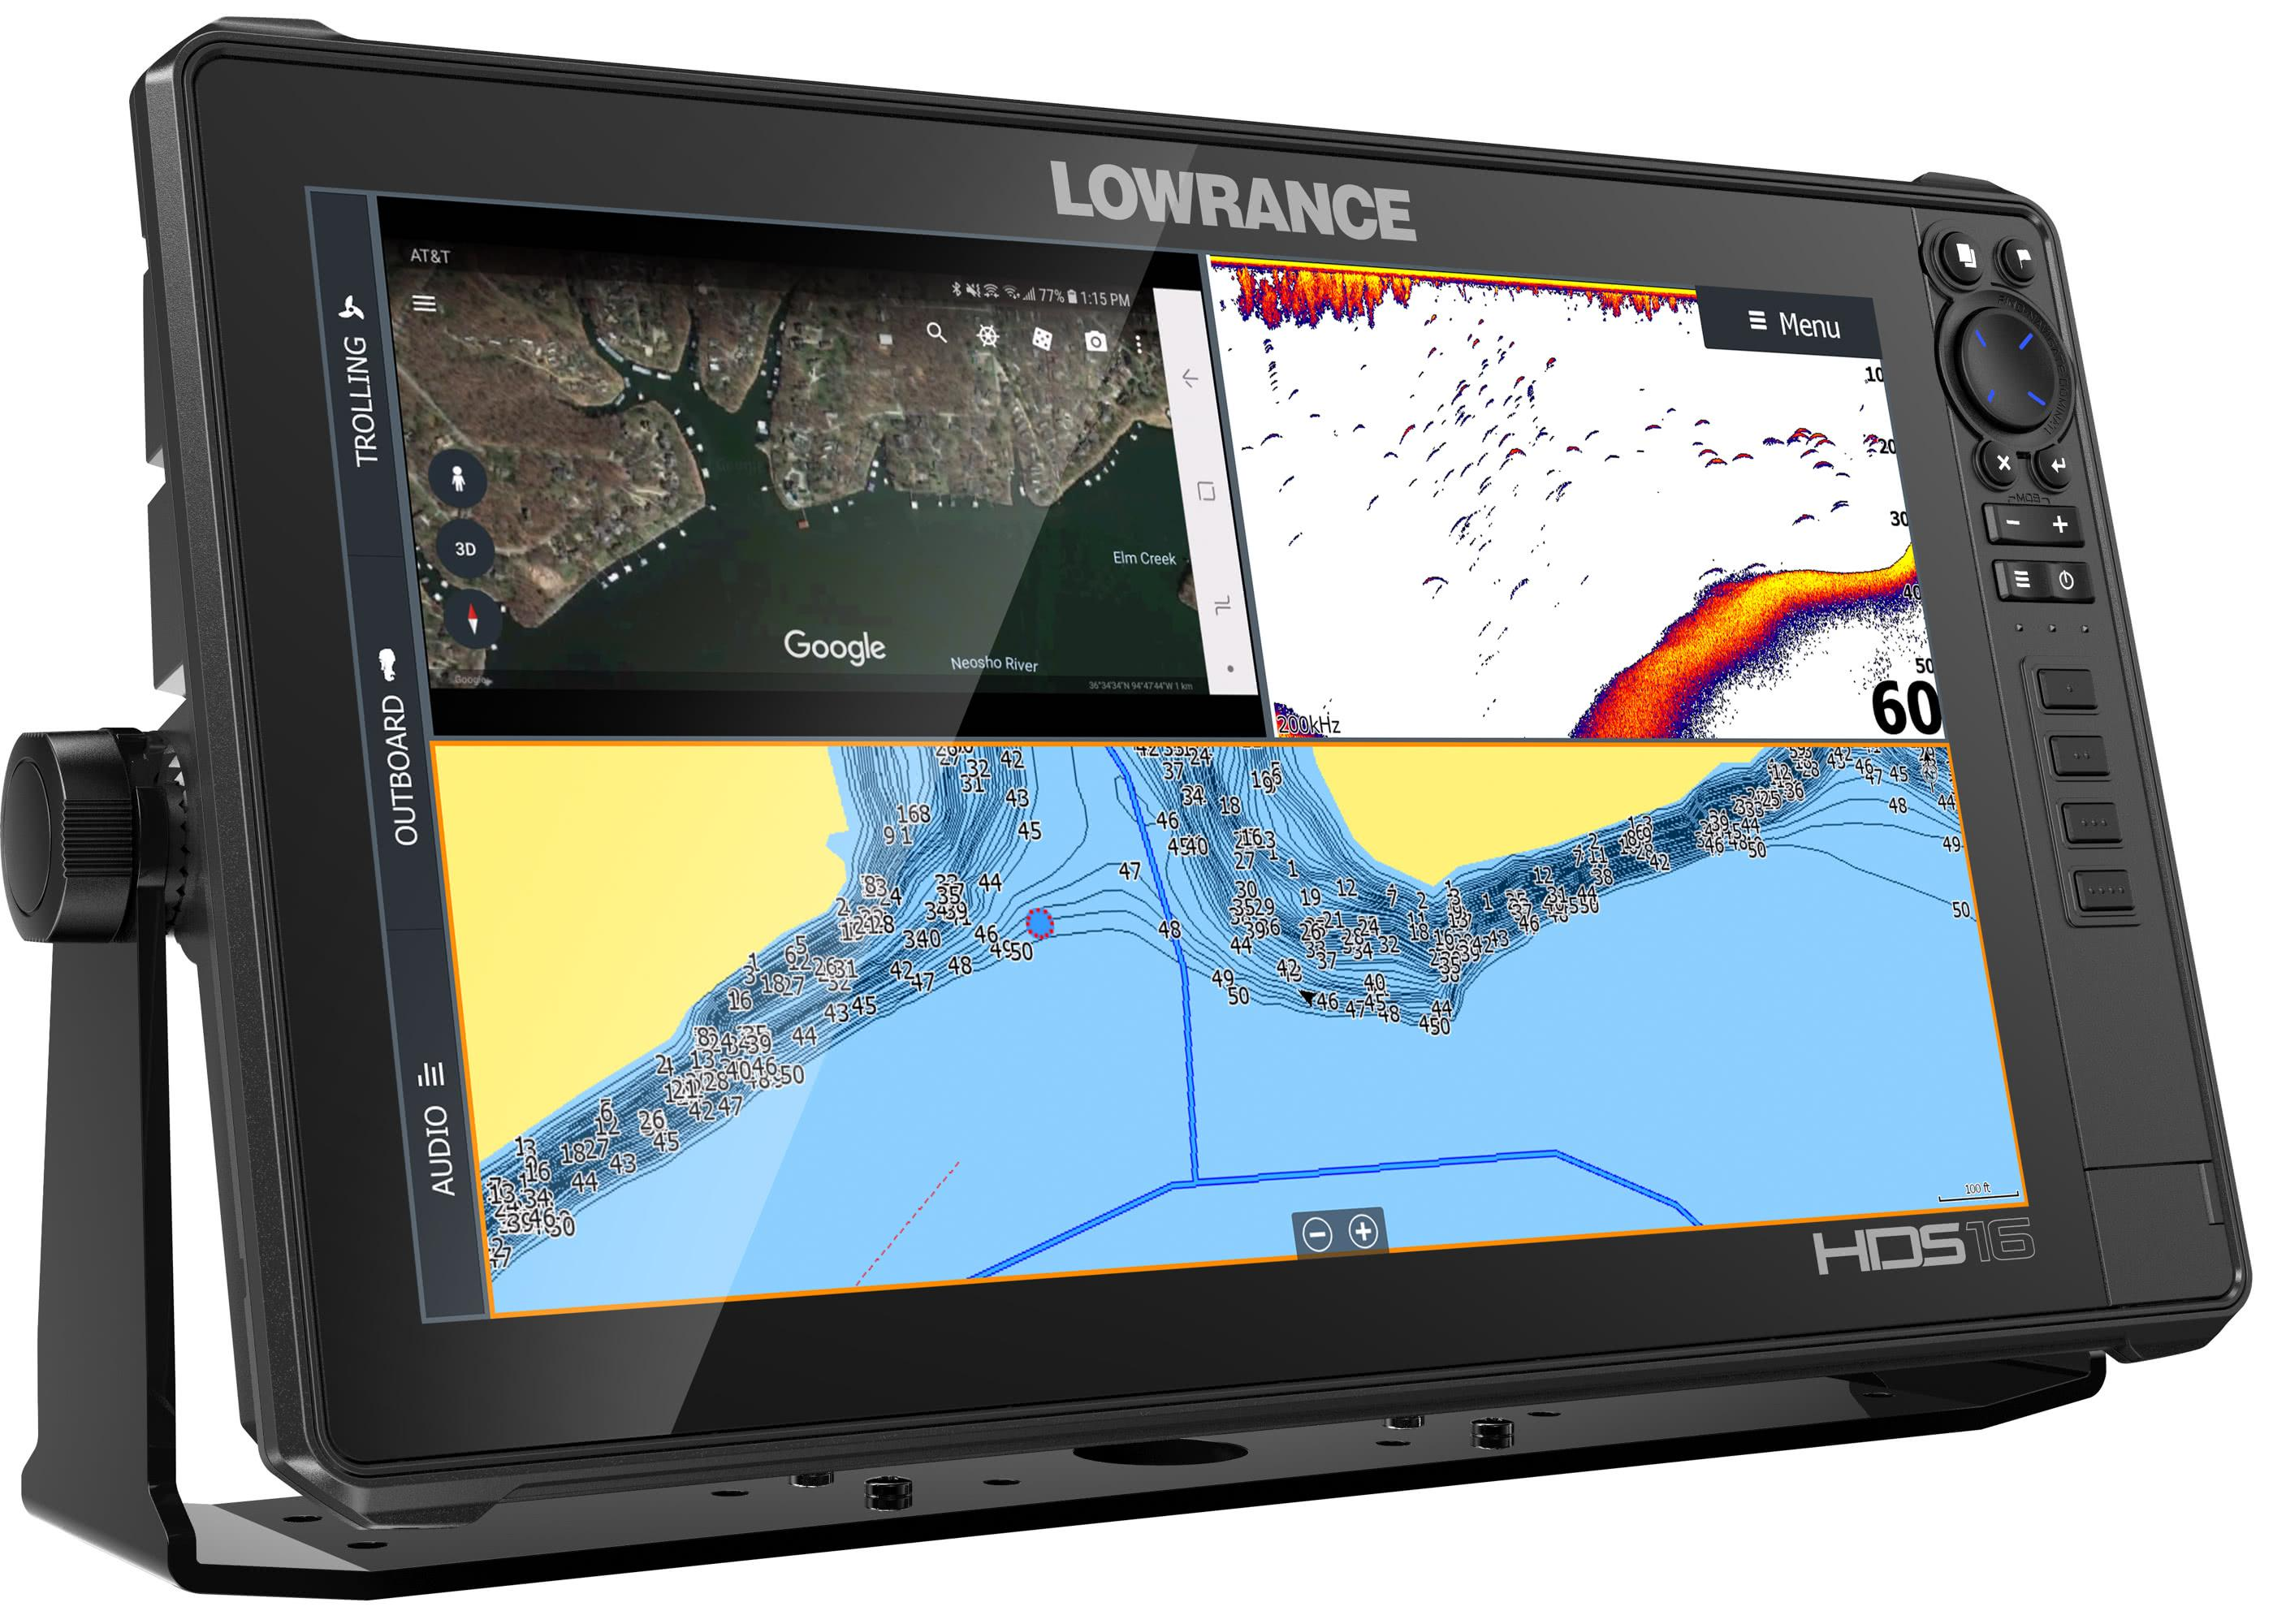 81691_81692_LOWRANCE_HDS-16_Live (16)-Bearbeitet.jpg